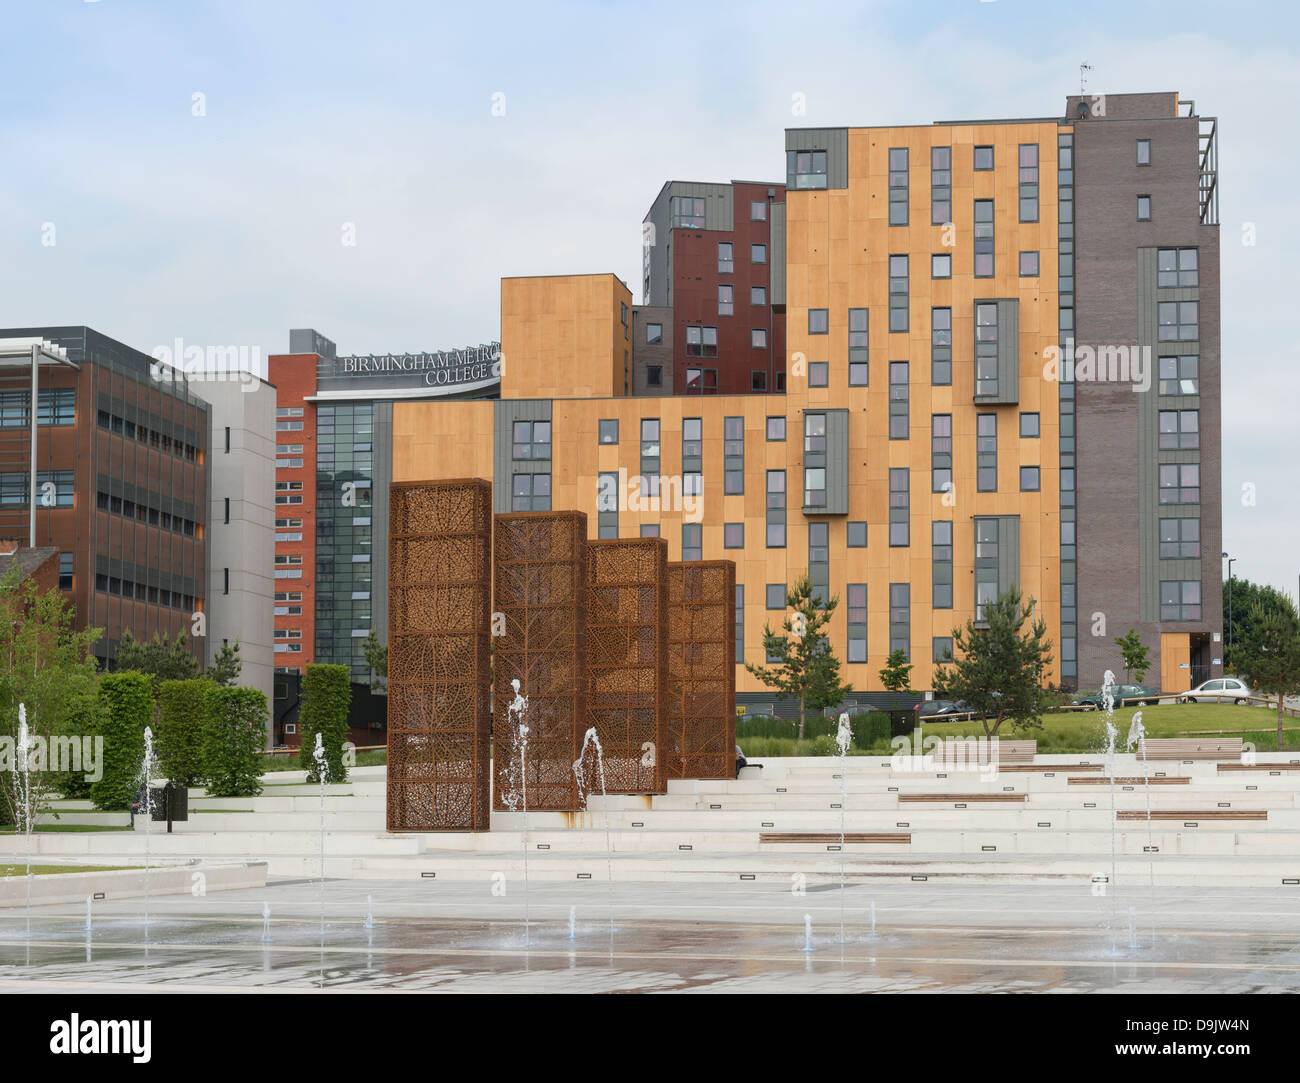 Jennens Court Halls of Residence, part of Birmingham City University - Stock Image